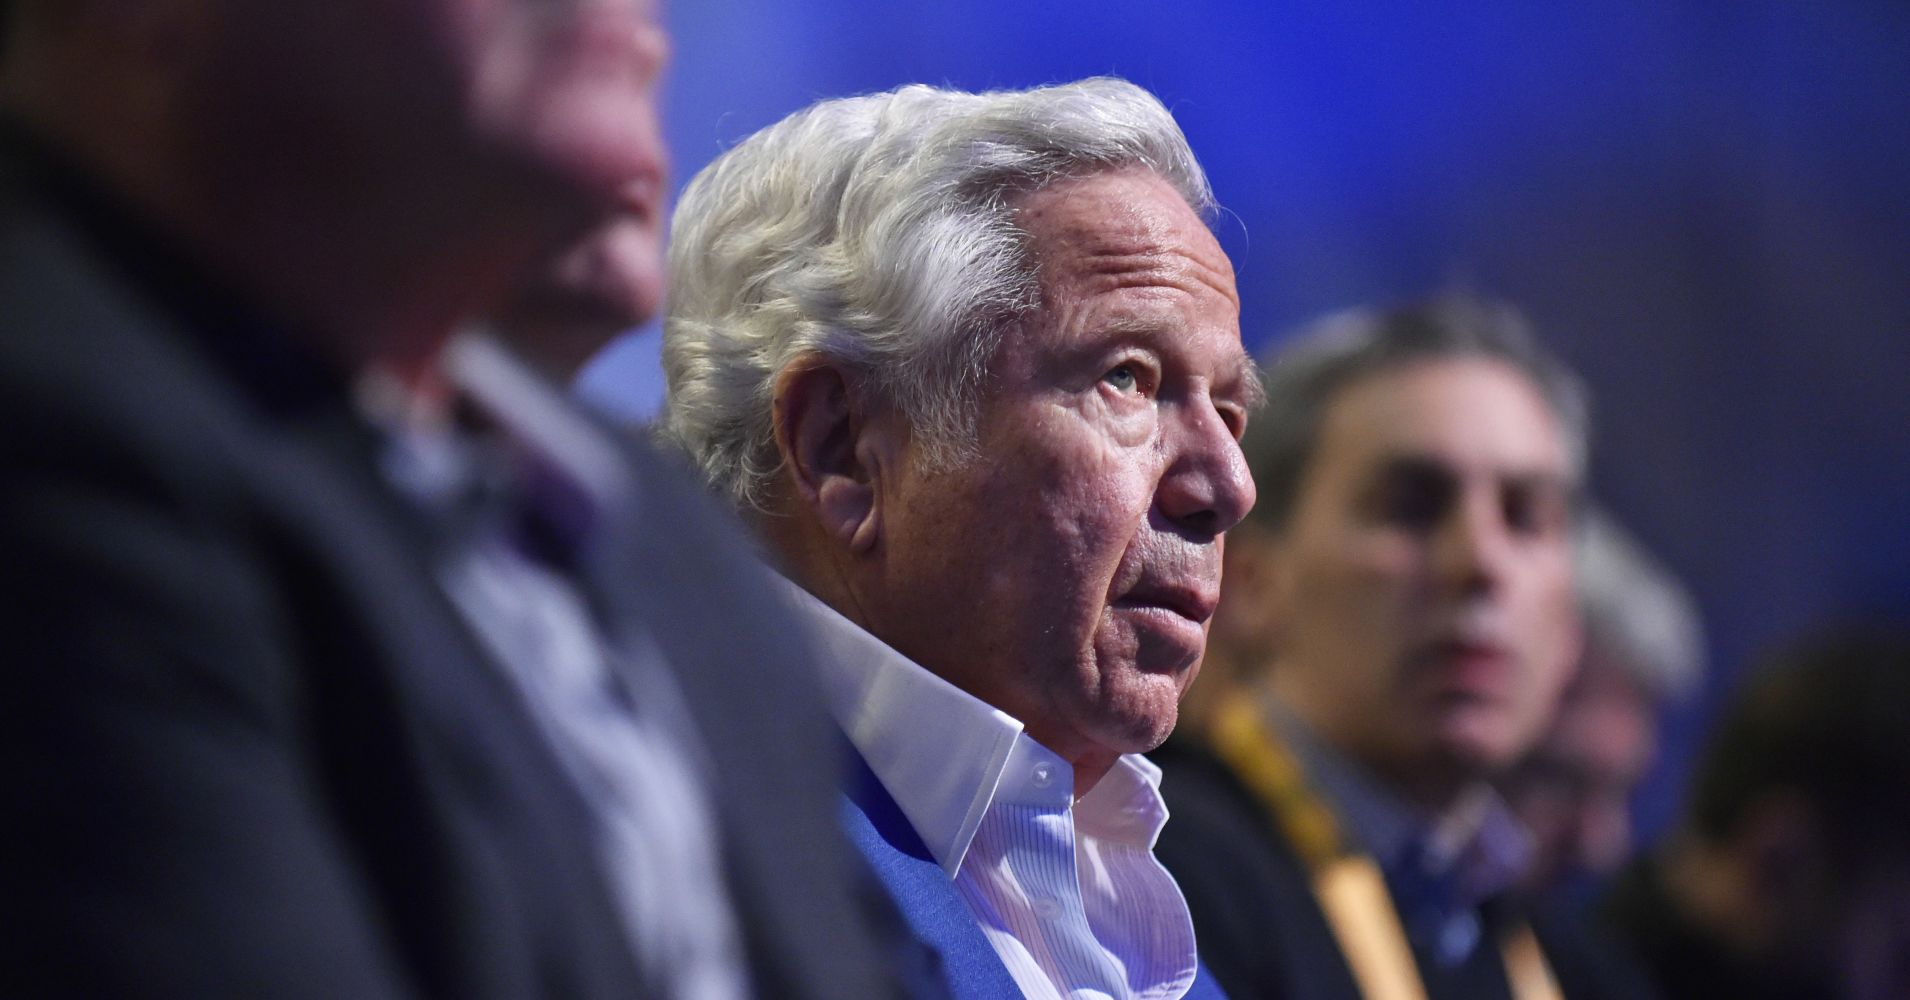 New England Patriots owner Robert Kraft listens to NFL Commissioner Roger Goodell speak to the media over various topics in the league leading up to Super Bowl LIII at the Georgia World Congress Center on January 30, 2019, in Atlanta, GA.